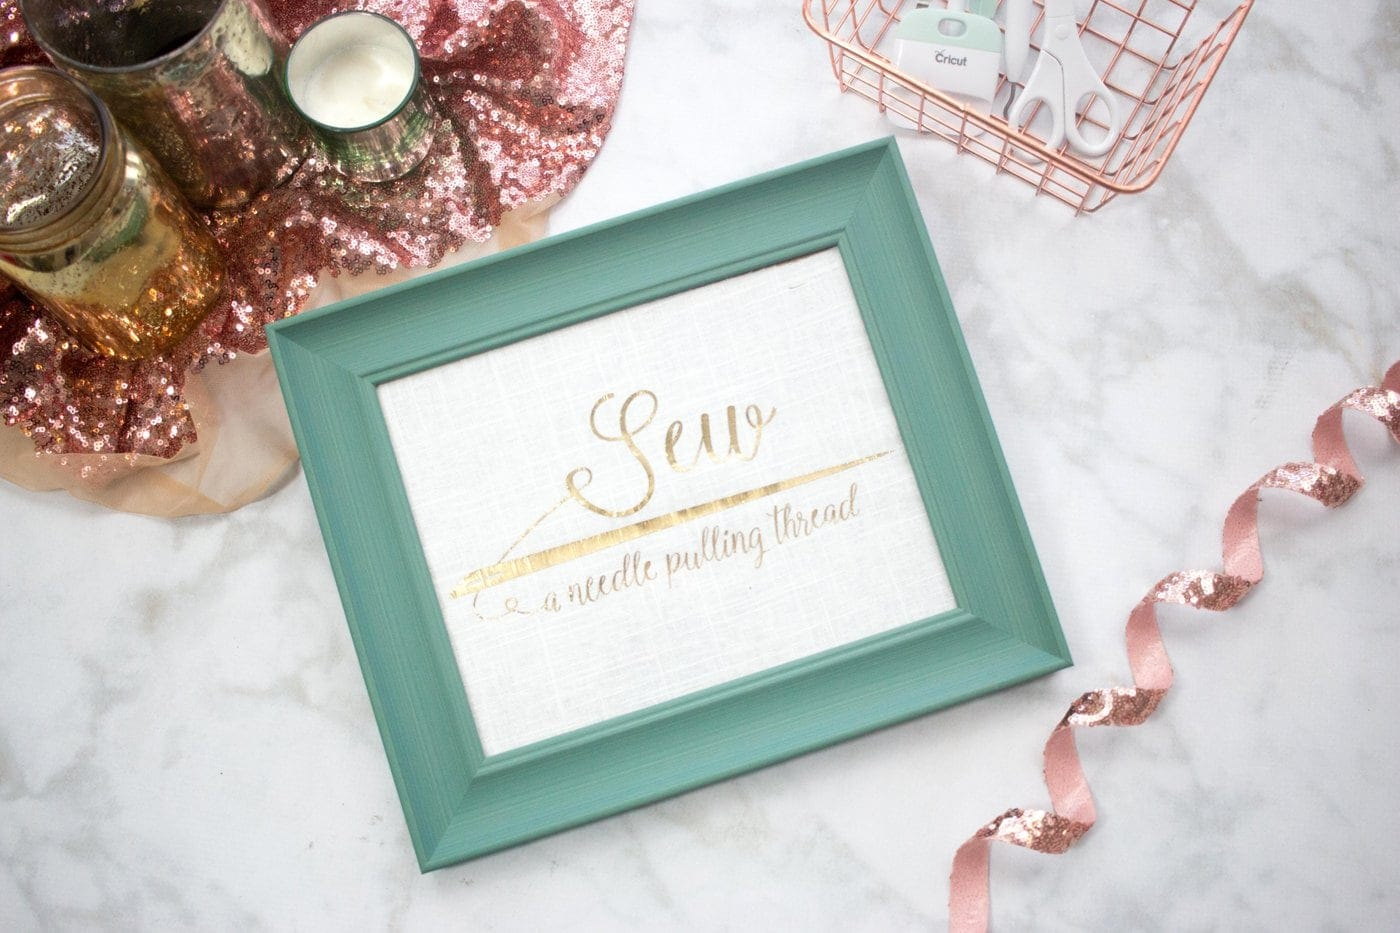 Free Sewing SVG cut file for Cricut Machines- a cute saying for your sewing room decor!